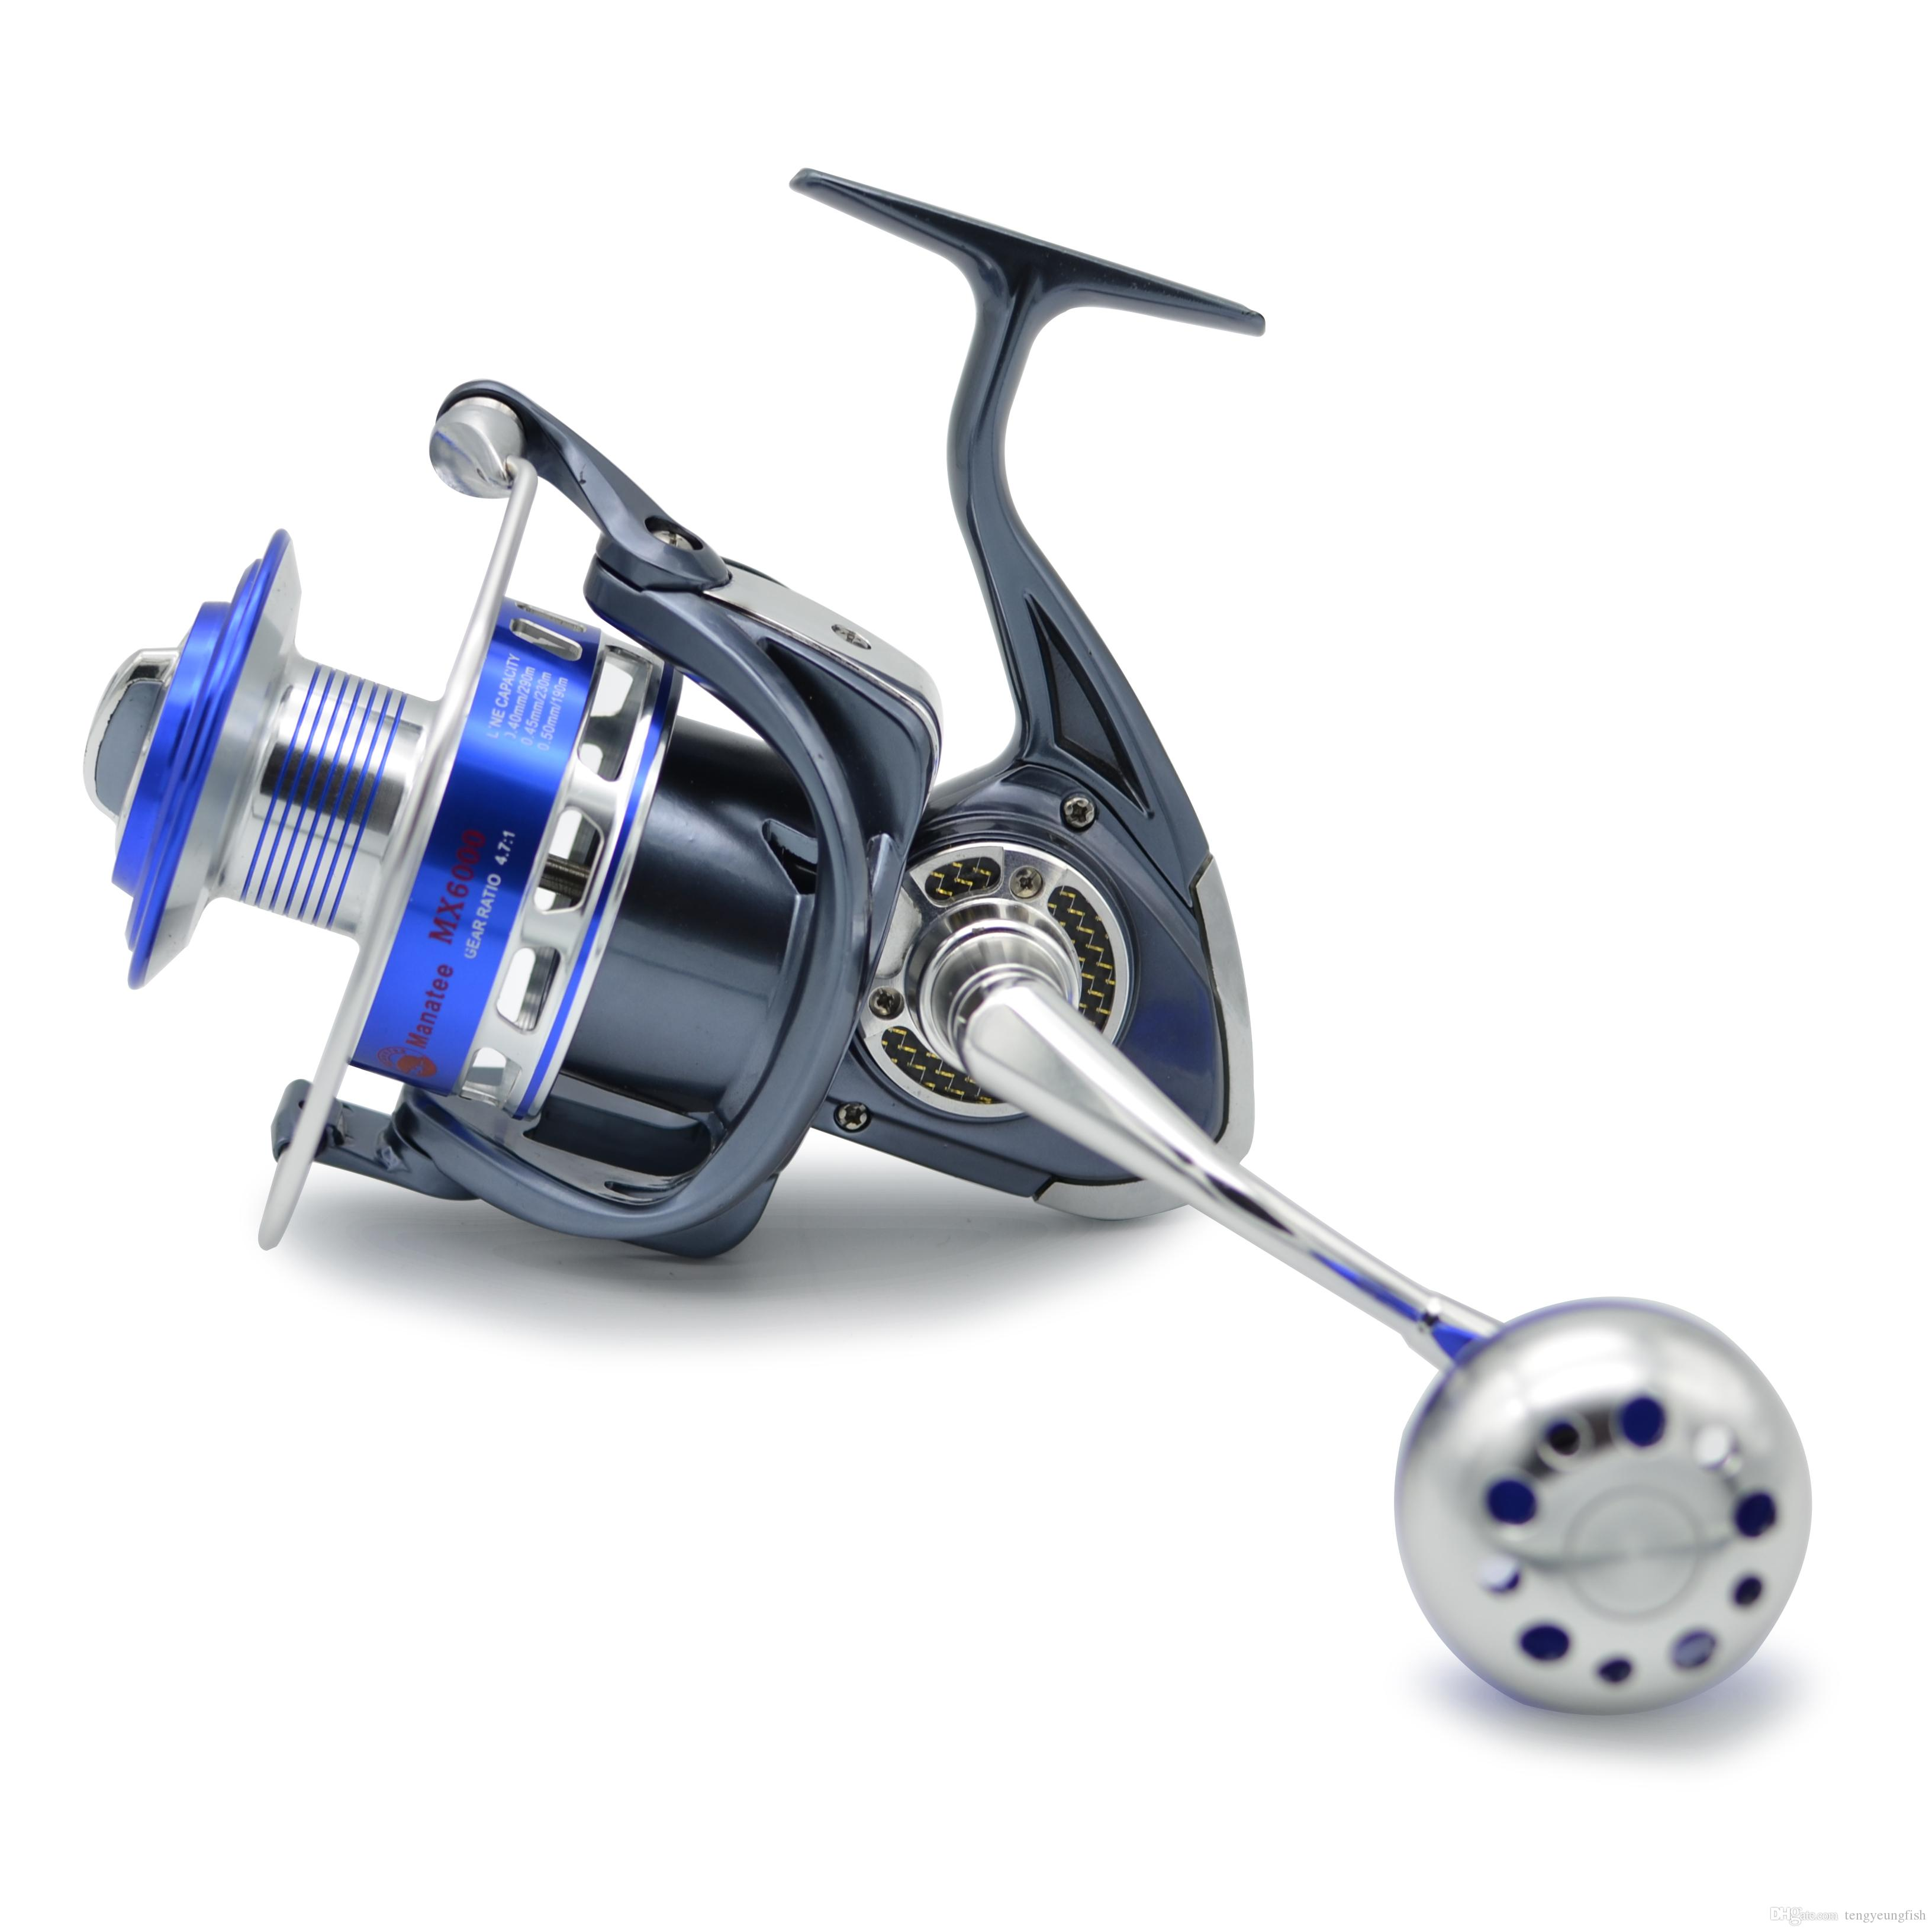 30kg power drag 4.7:1 12+1 ball bearings spinning reels sea, Reel Combo